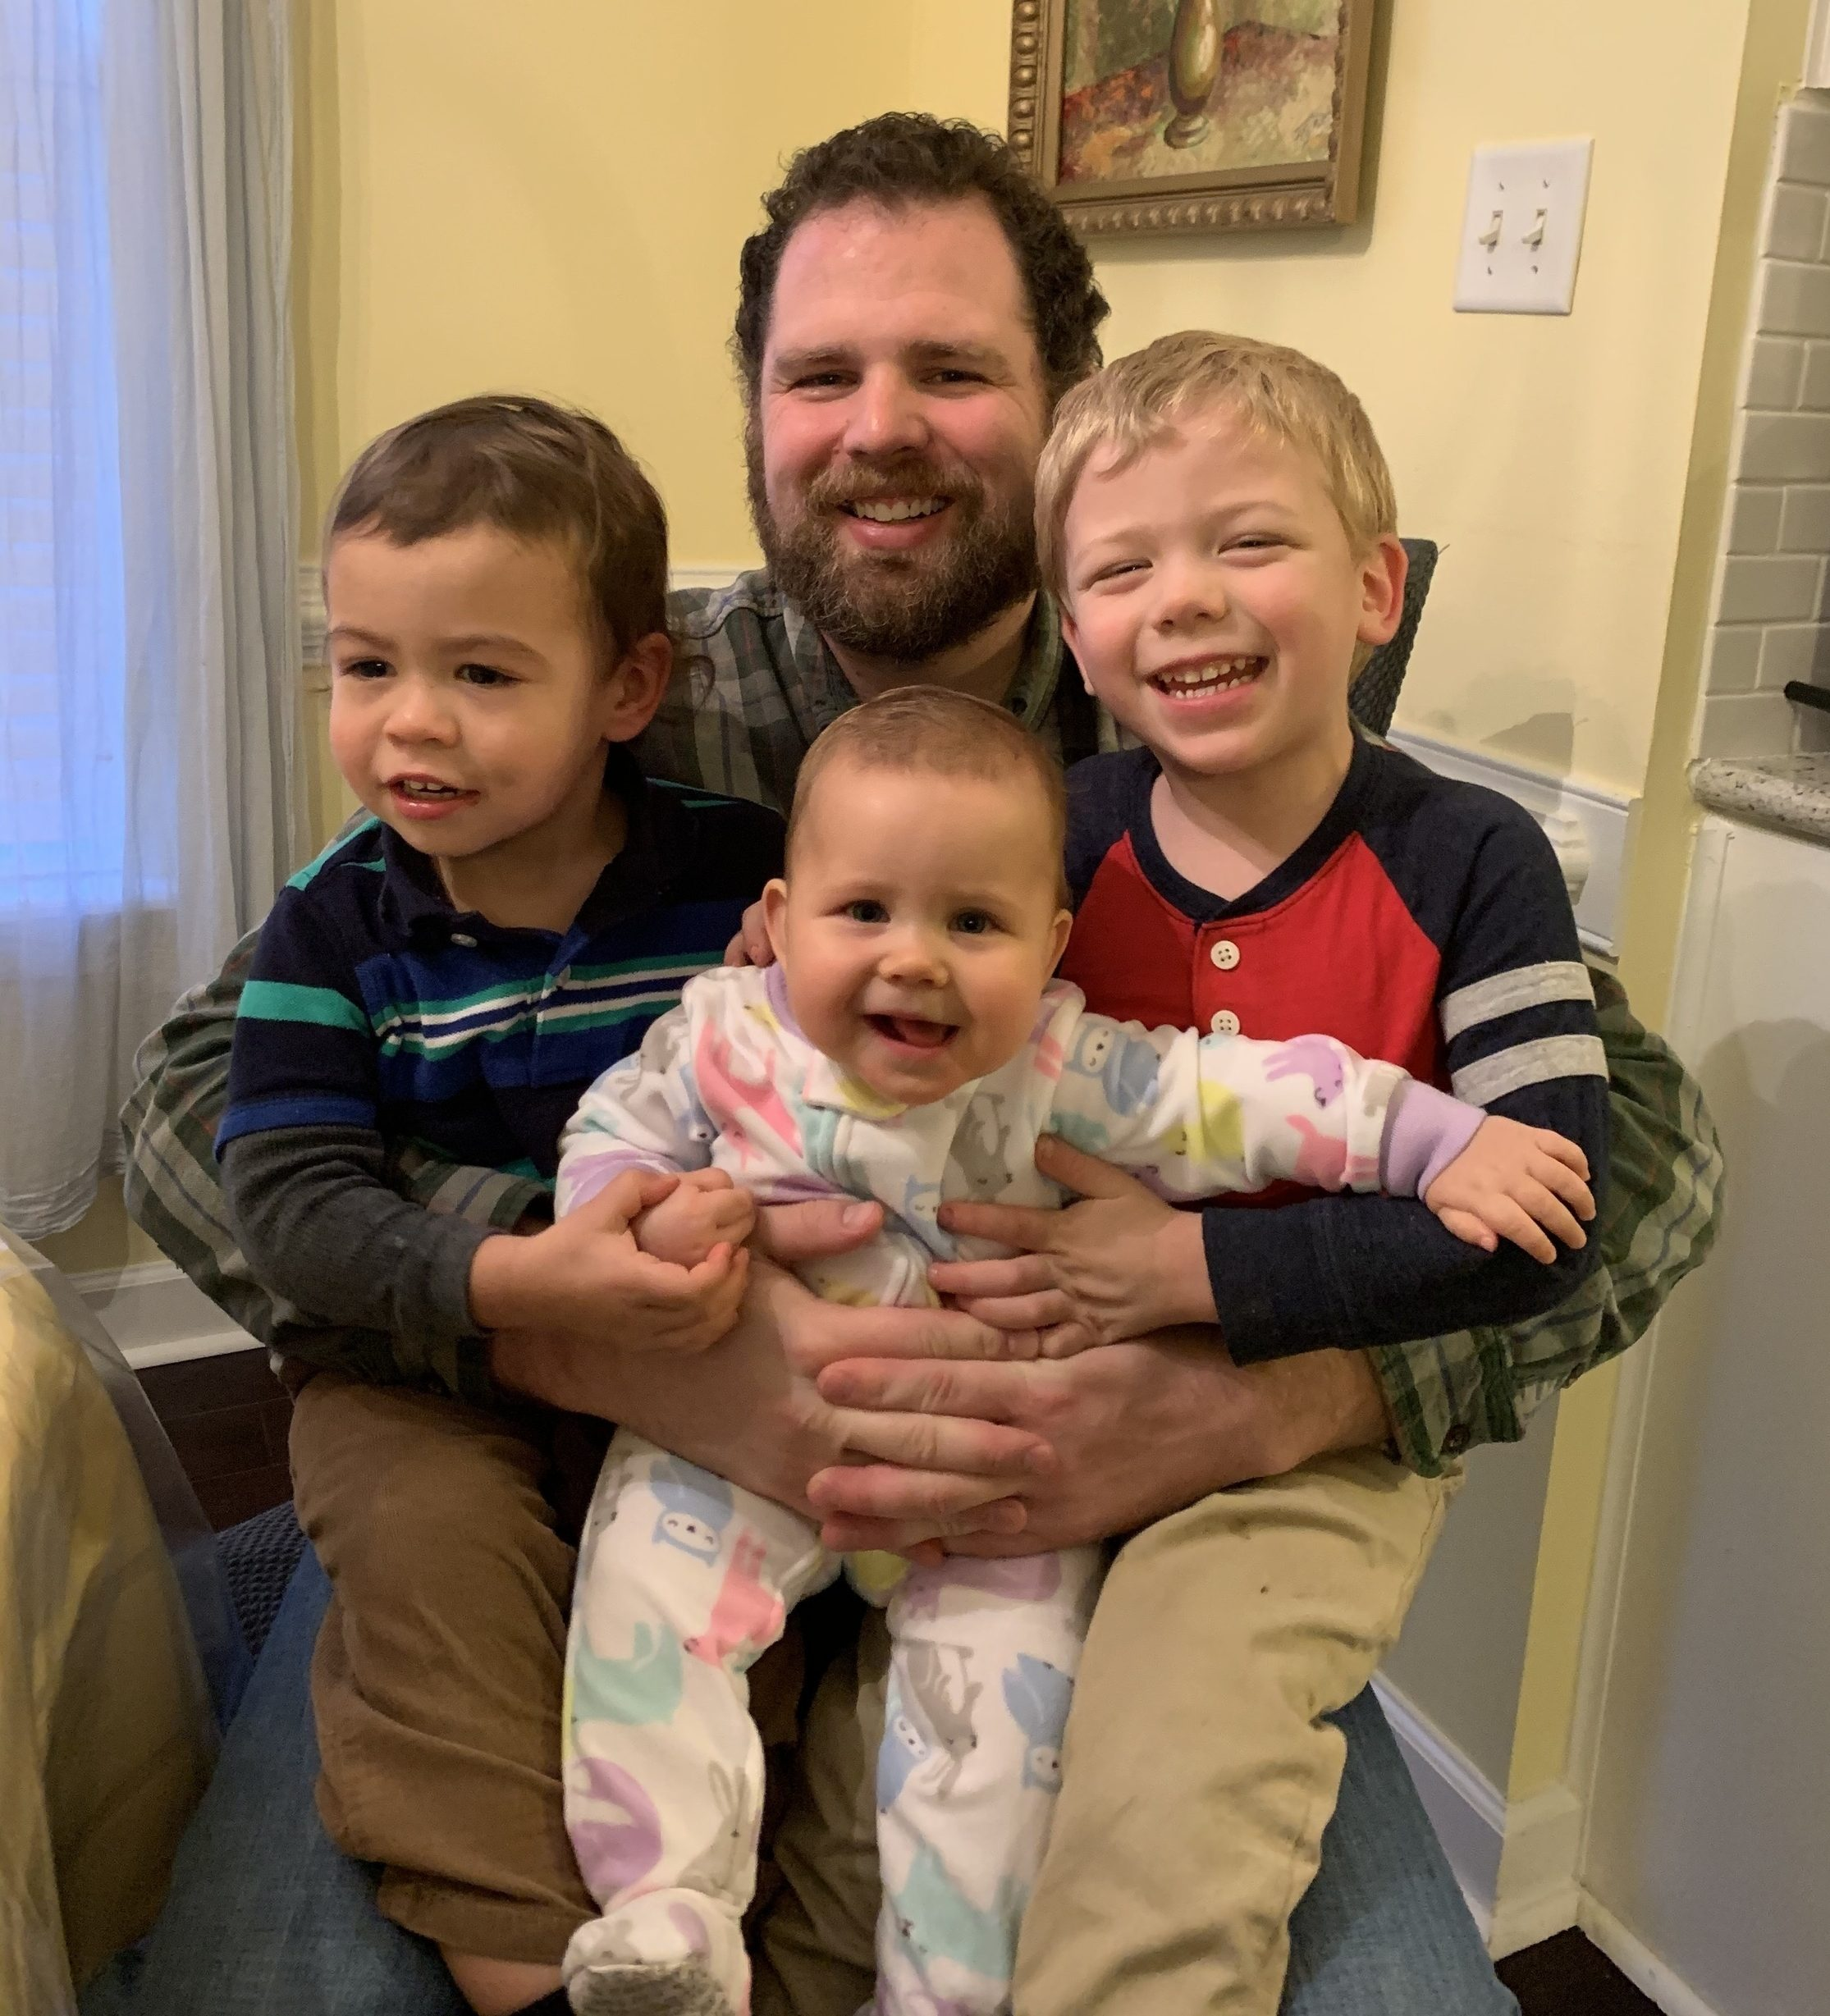 Jacob Caruso with his three children.